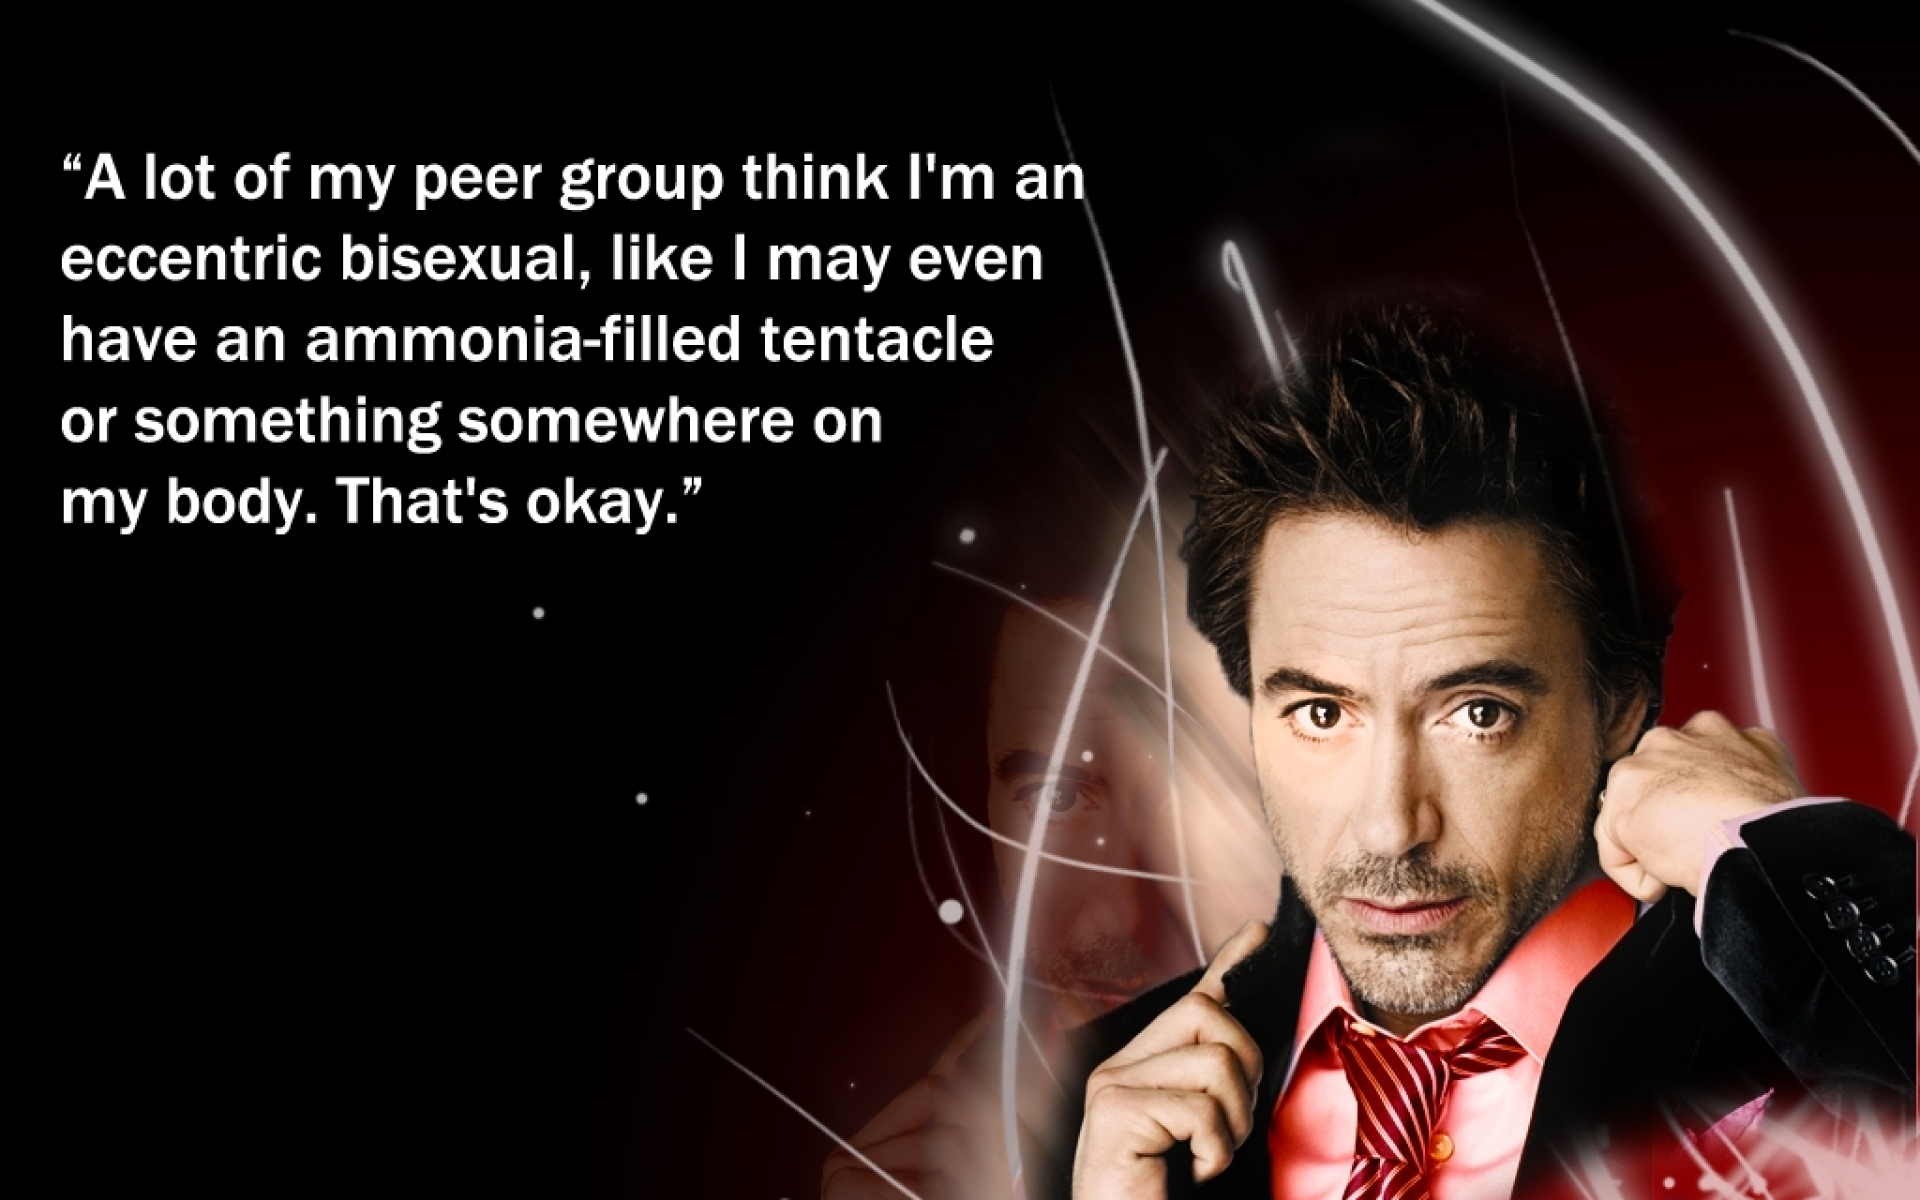 Robert downey jr bisexual